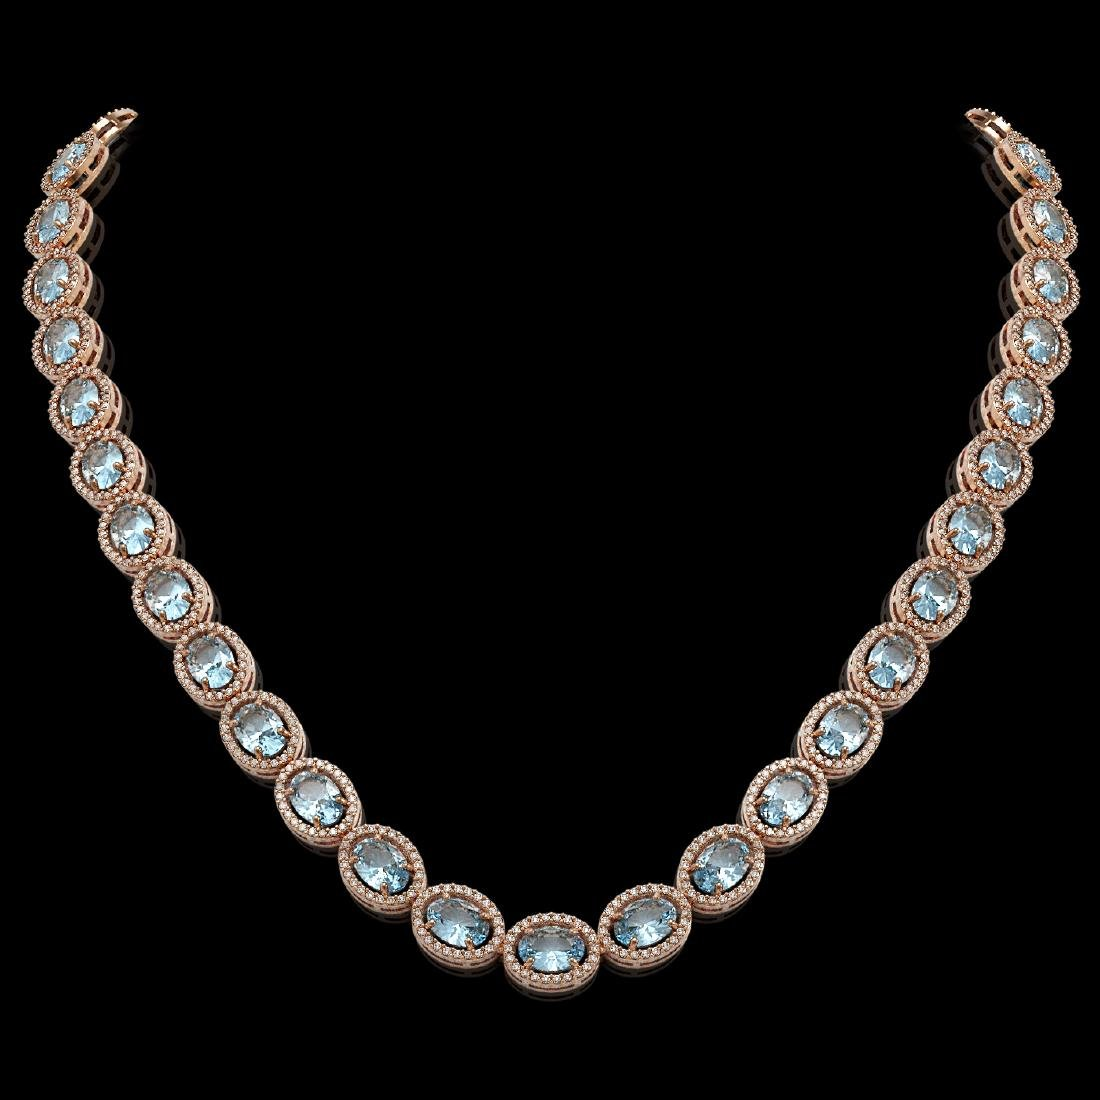 41.88 CTW Aquamarine & Diamond Halo Necklace 10K Rose